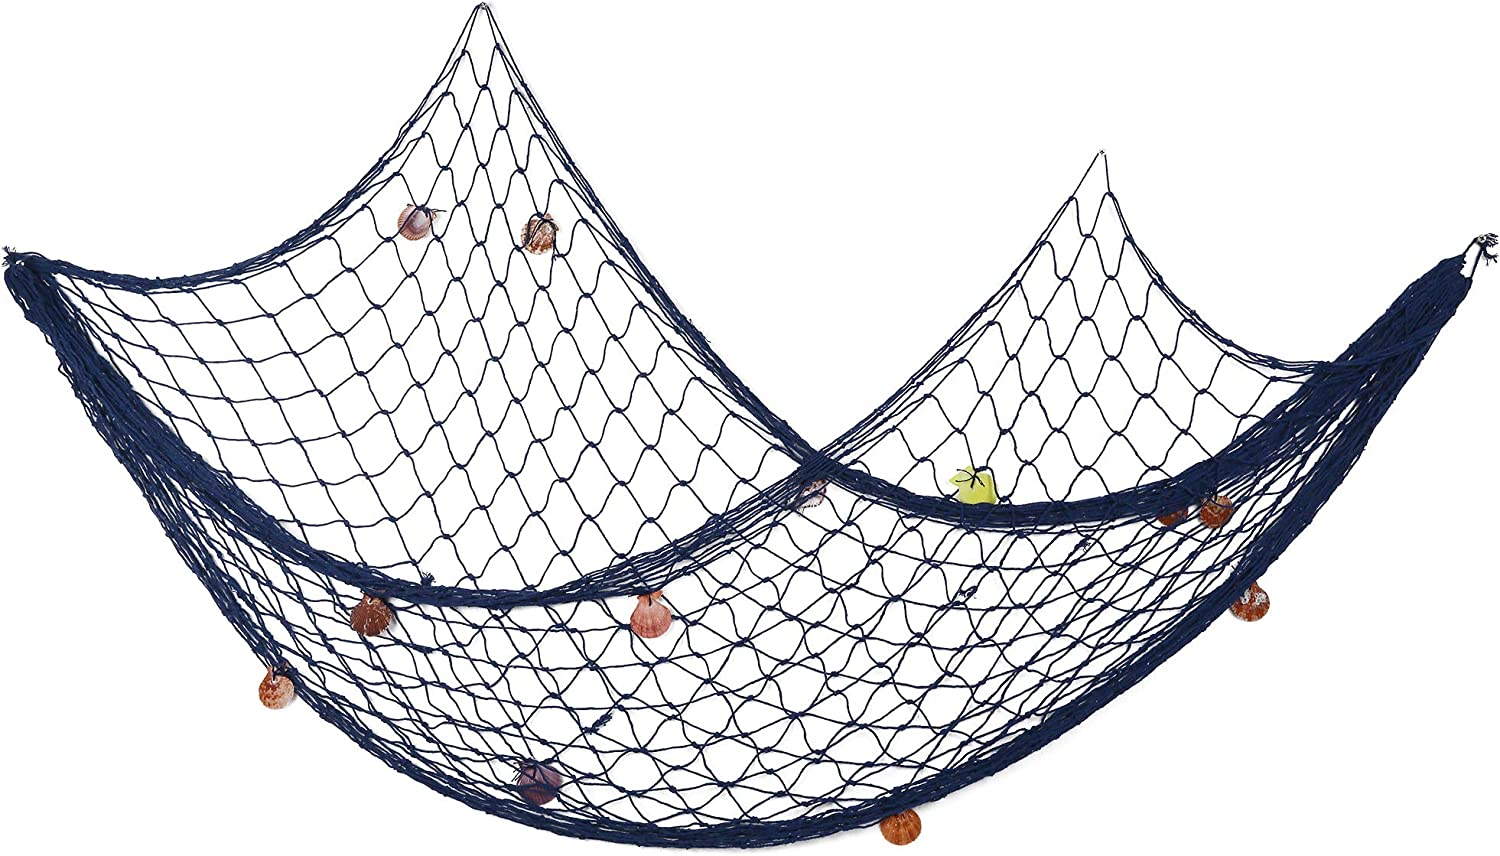 Febou Fishing Net Decor Decorative Fish Net with Sea Shells Nautical Wall Hanging Fish Netting Beach Theme Decoration for Party Bathroom Home (Blue, 79inch x 59inch)